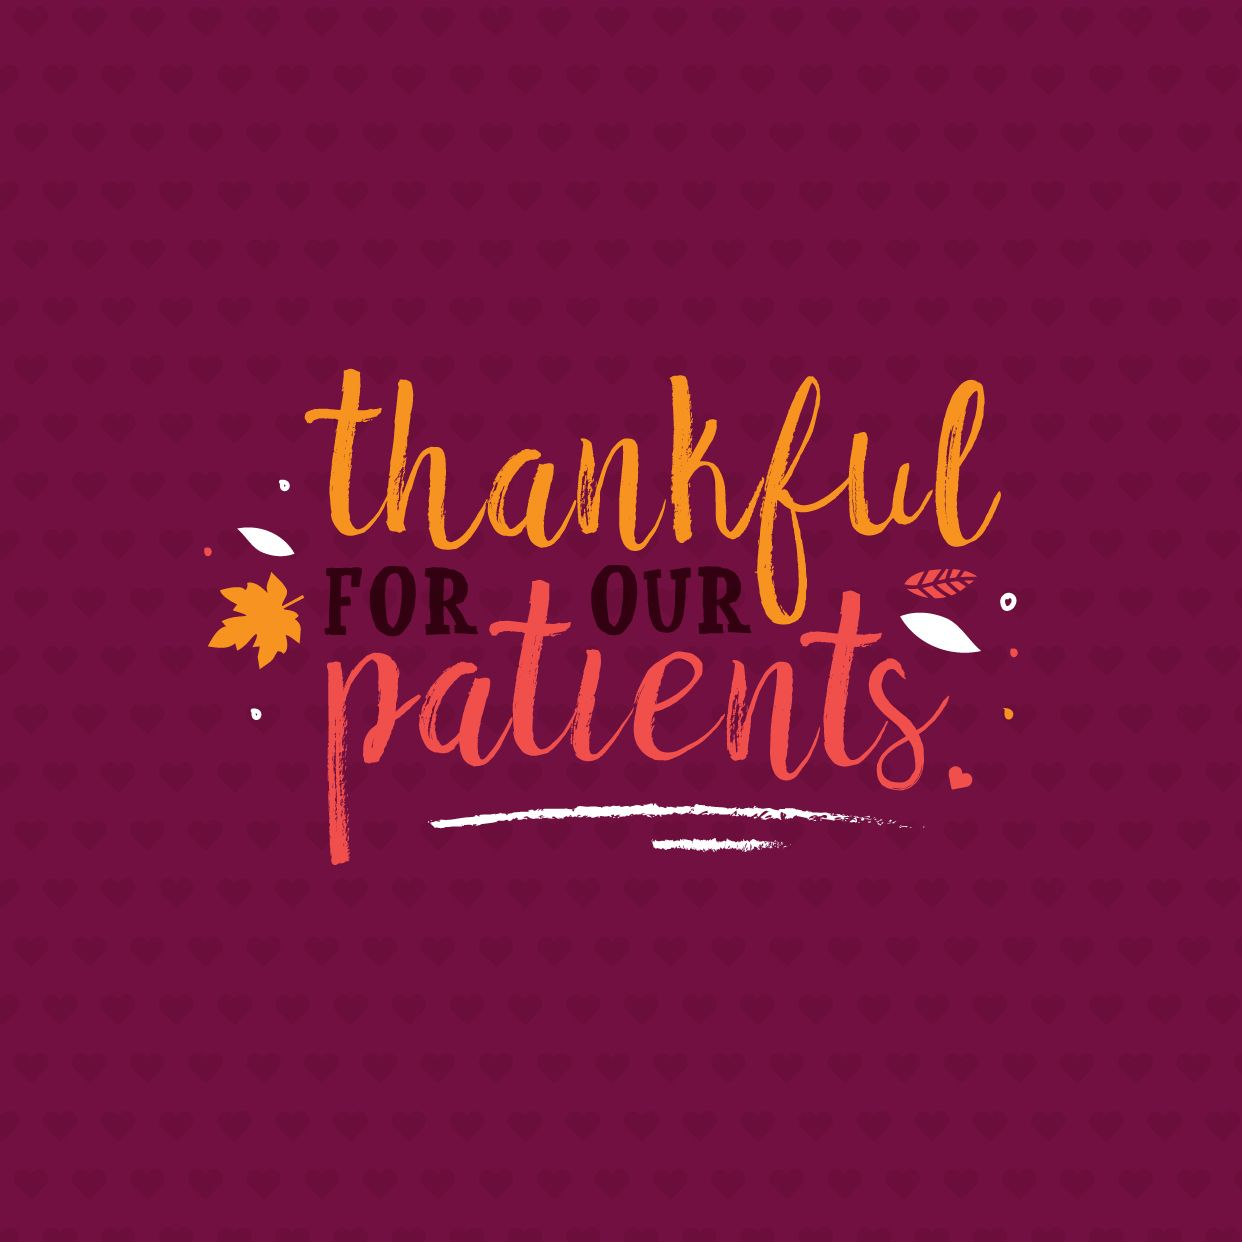 Happy Thanksgiving Giving Thanks For Your Friendship